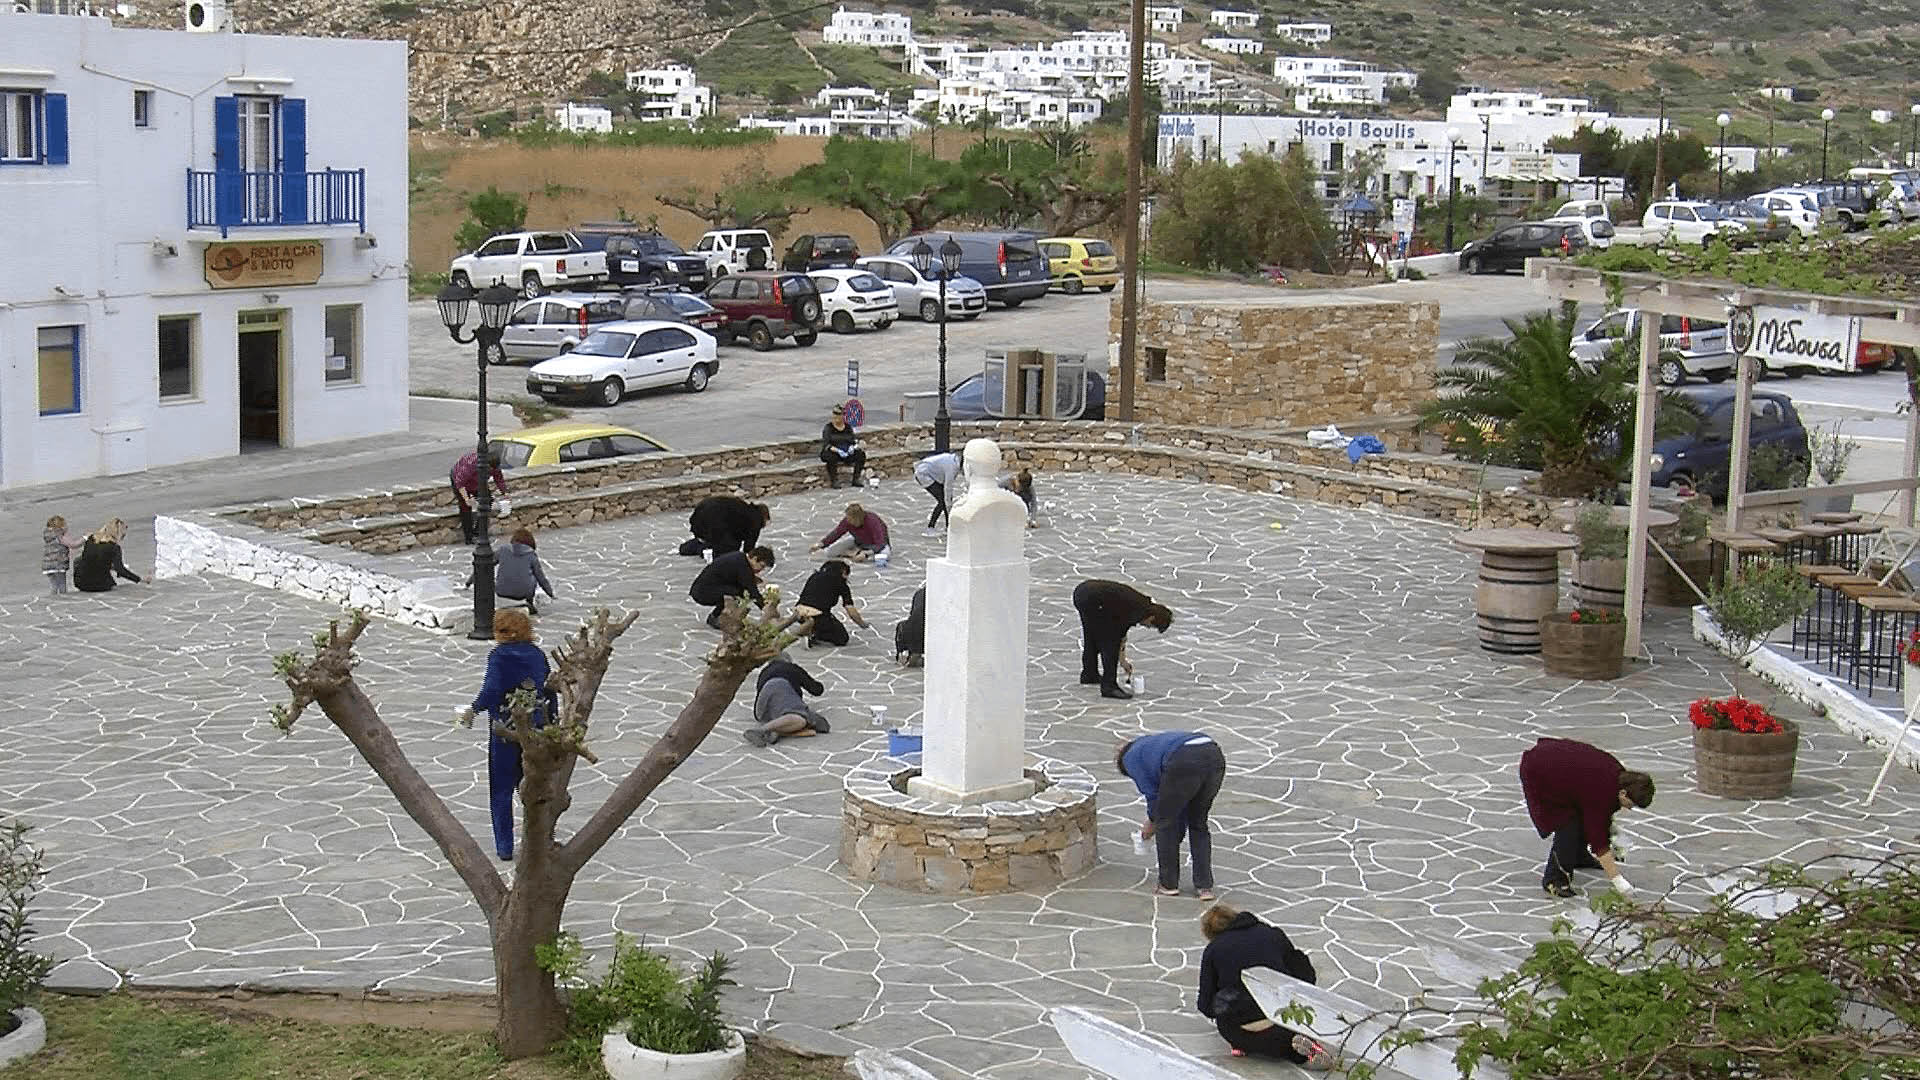 Sifnos Community - Sifnos Island - Greece